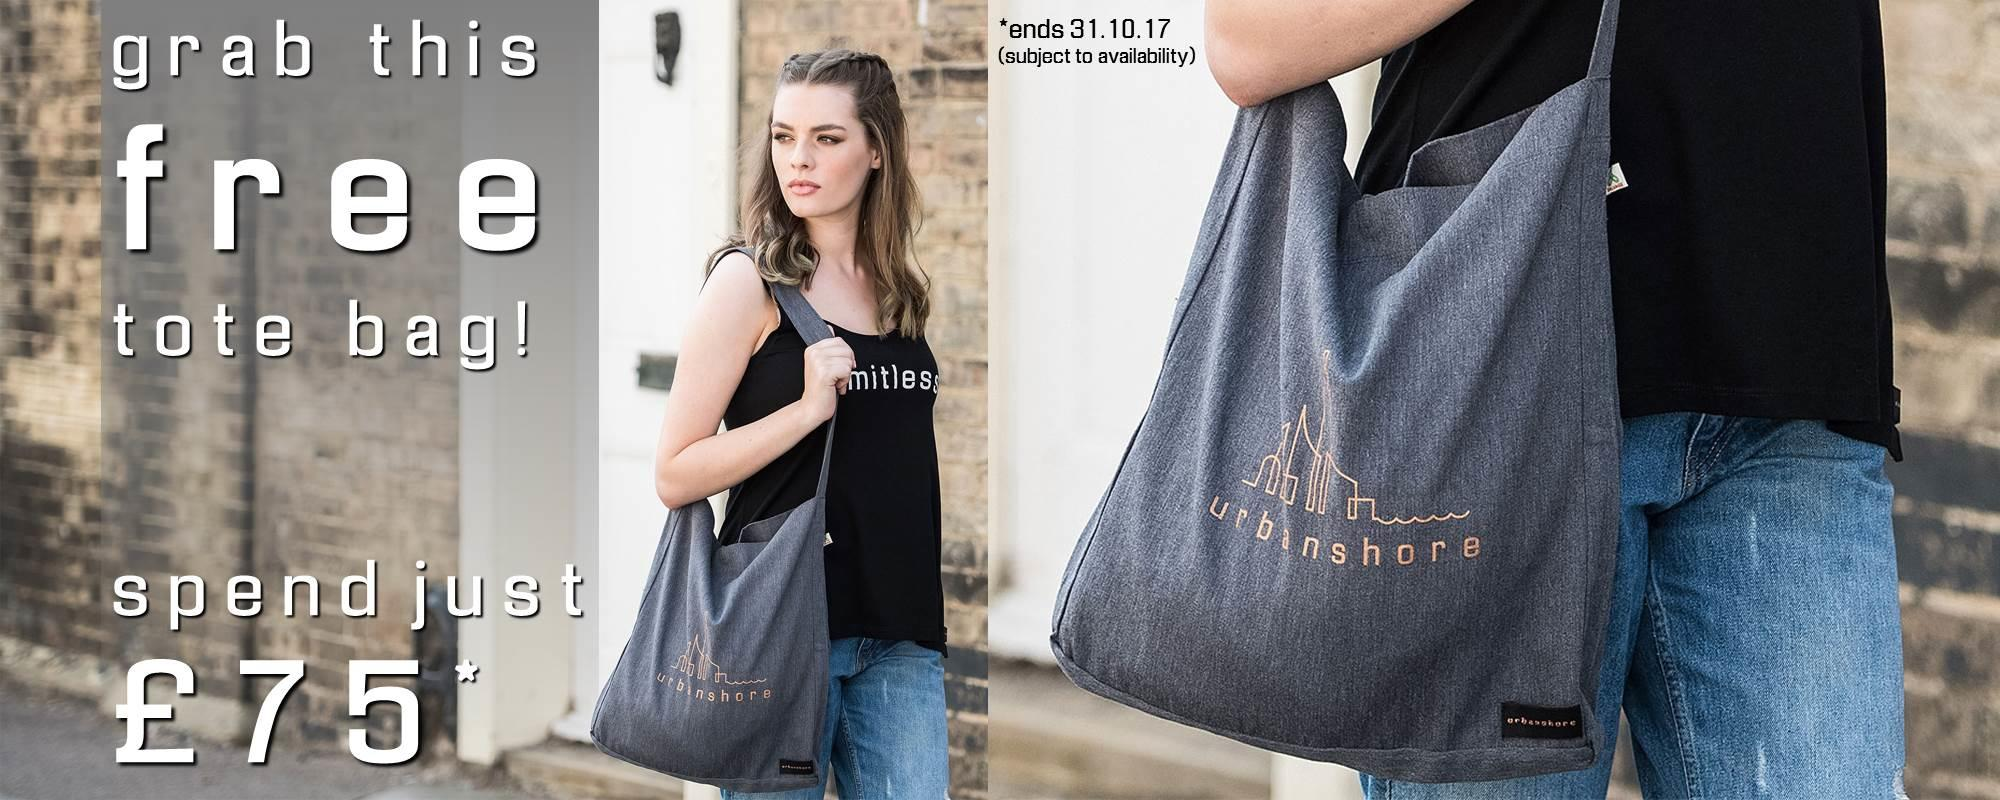 free-tote-bag-offer6.jpg